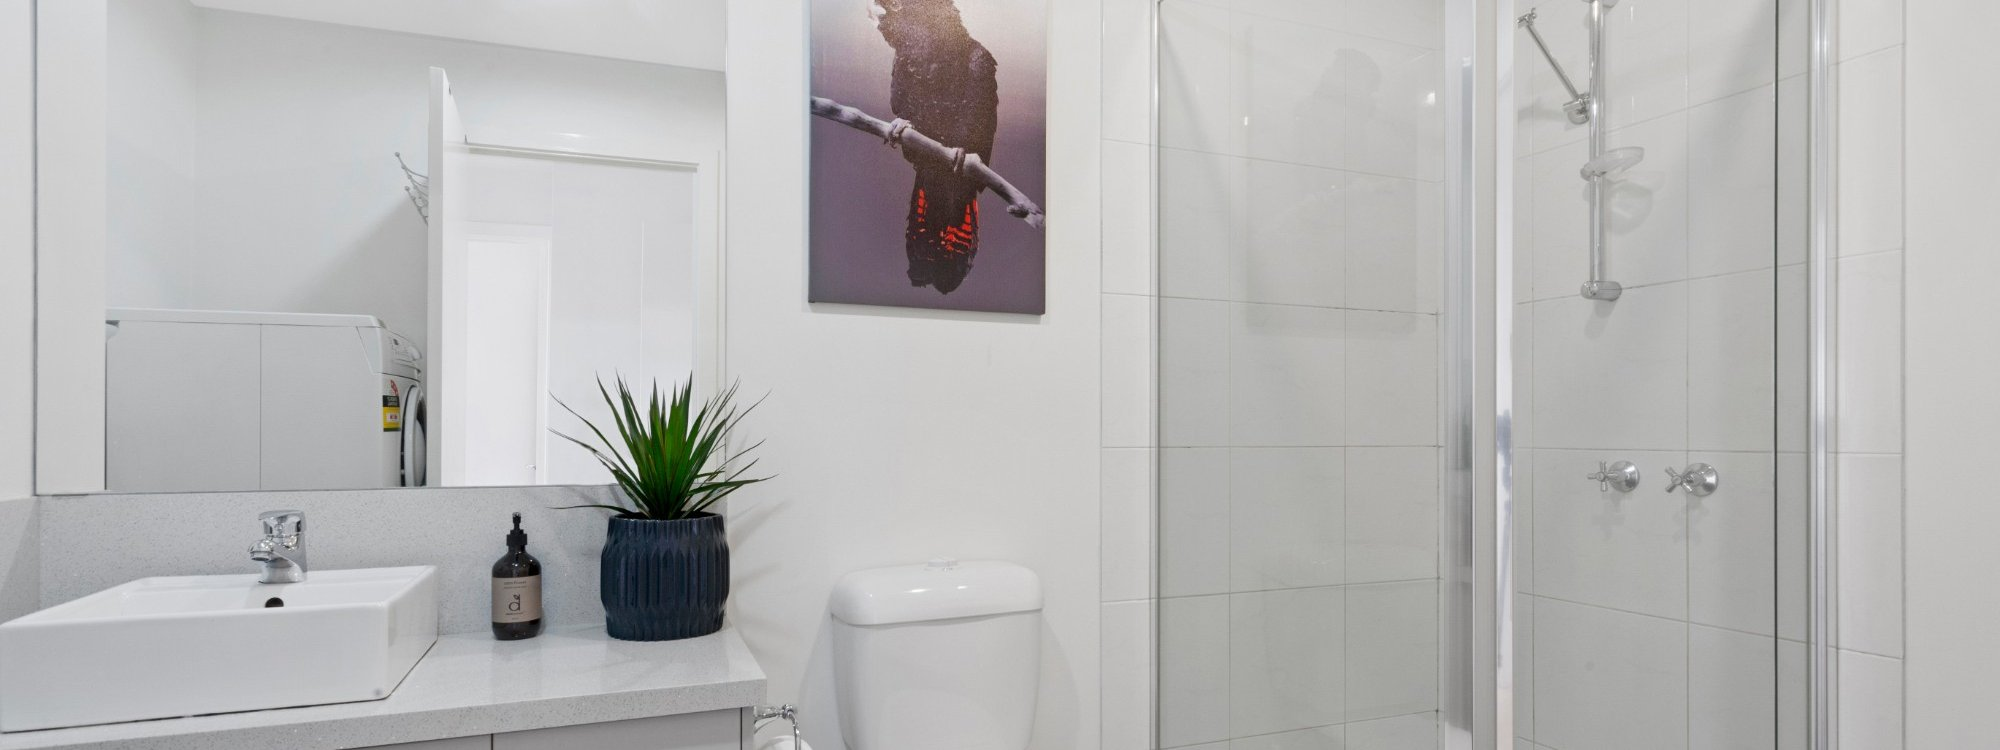 Manallack Apartments Boyd - Melbourne - Bathroom 1